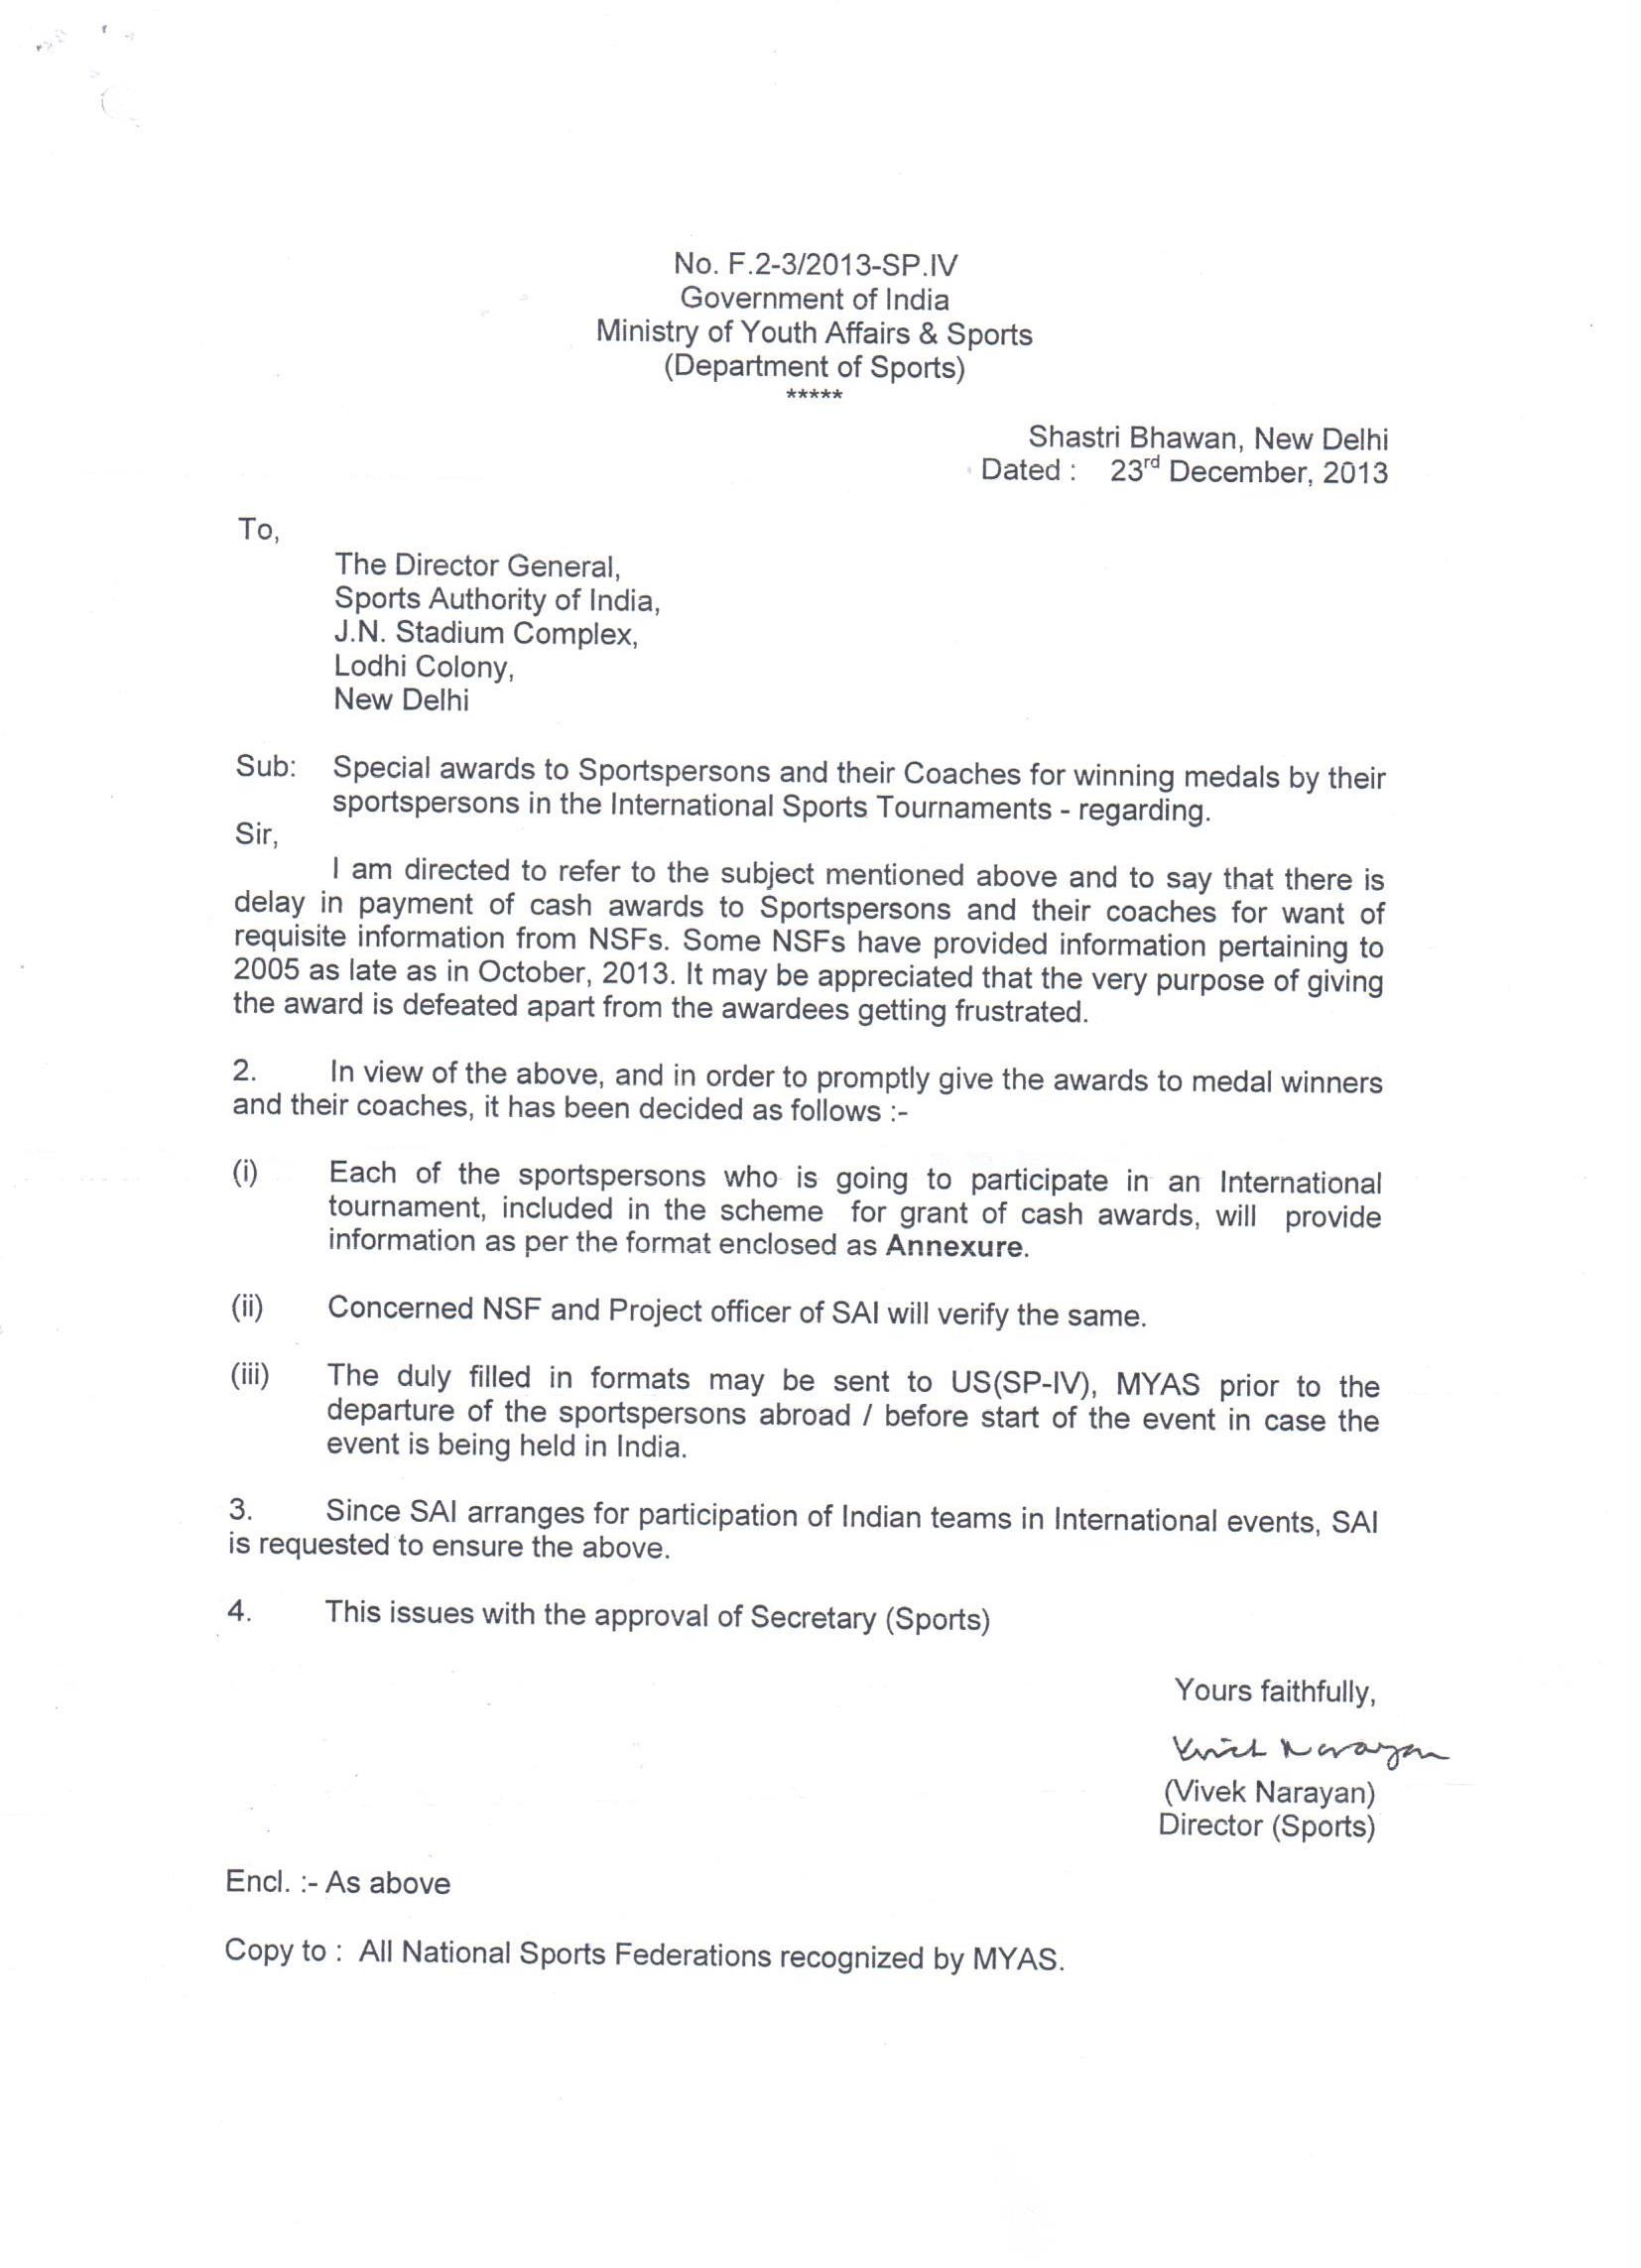 Special awards to sports persons and their coaches letter received special awards to sports persons and their coaches letter received from sai thecheapjerseys Choice Image